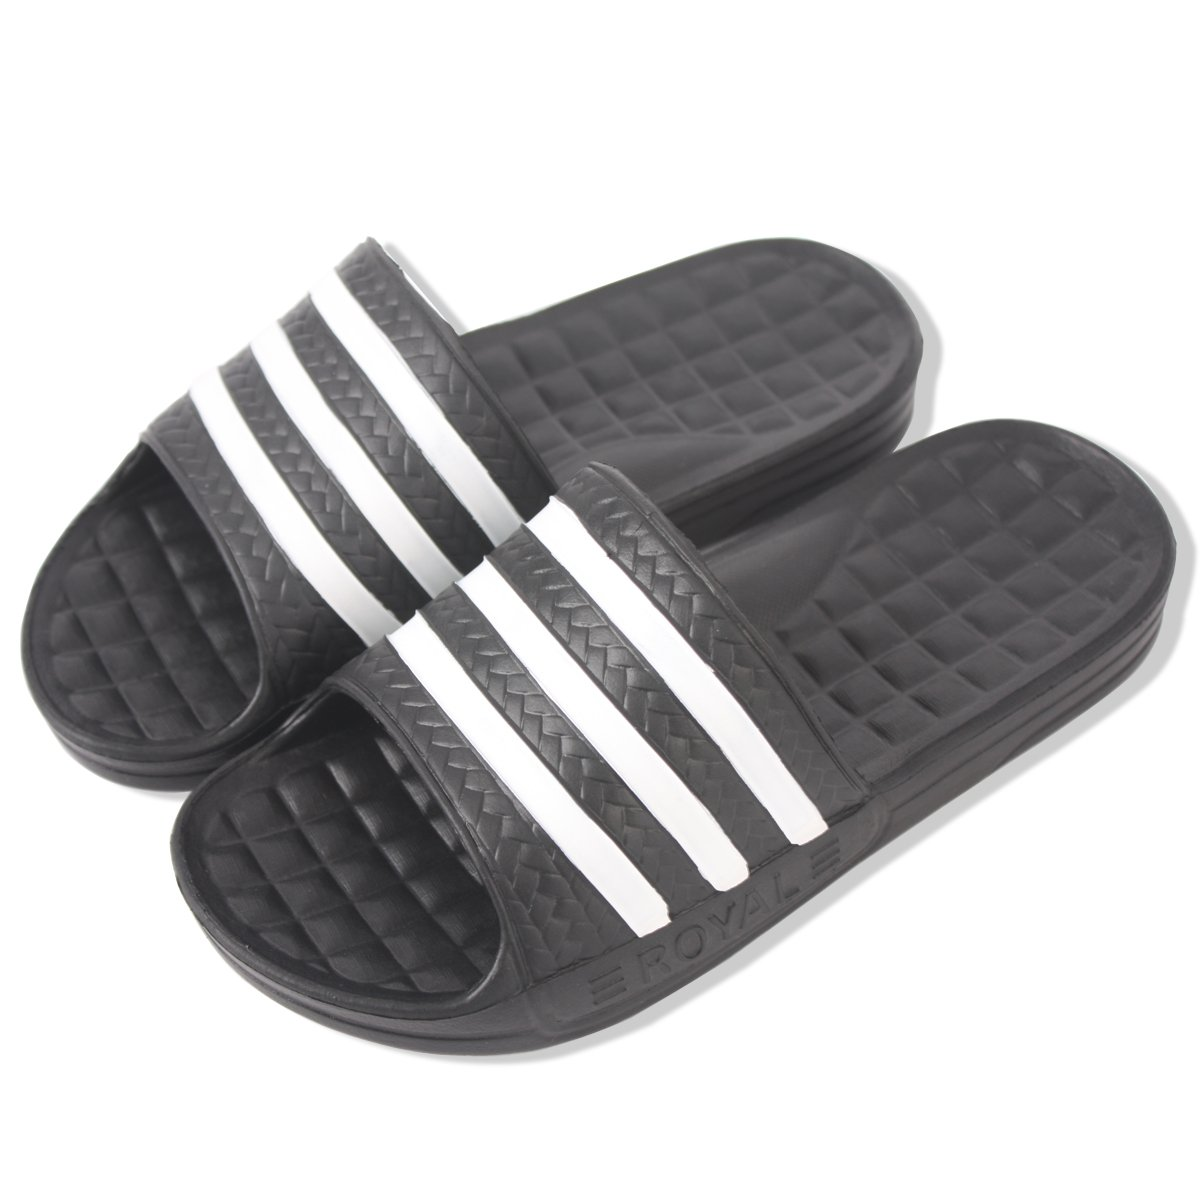 Korean Style Three Striped Eva Slippers for Women Men,Soft House Sandals Suitable for Office Bedroom Dining Room Spa Swimming Poolside Indoor & Outdoor (M:9/W:10, Black)